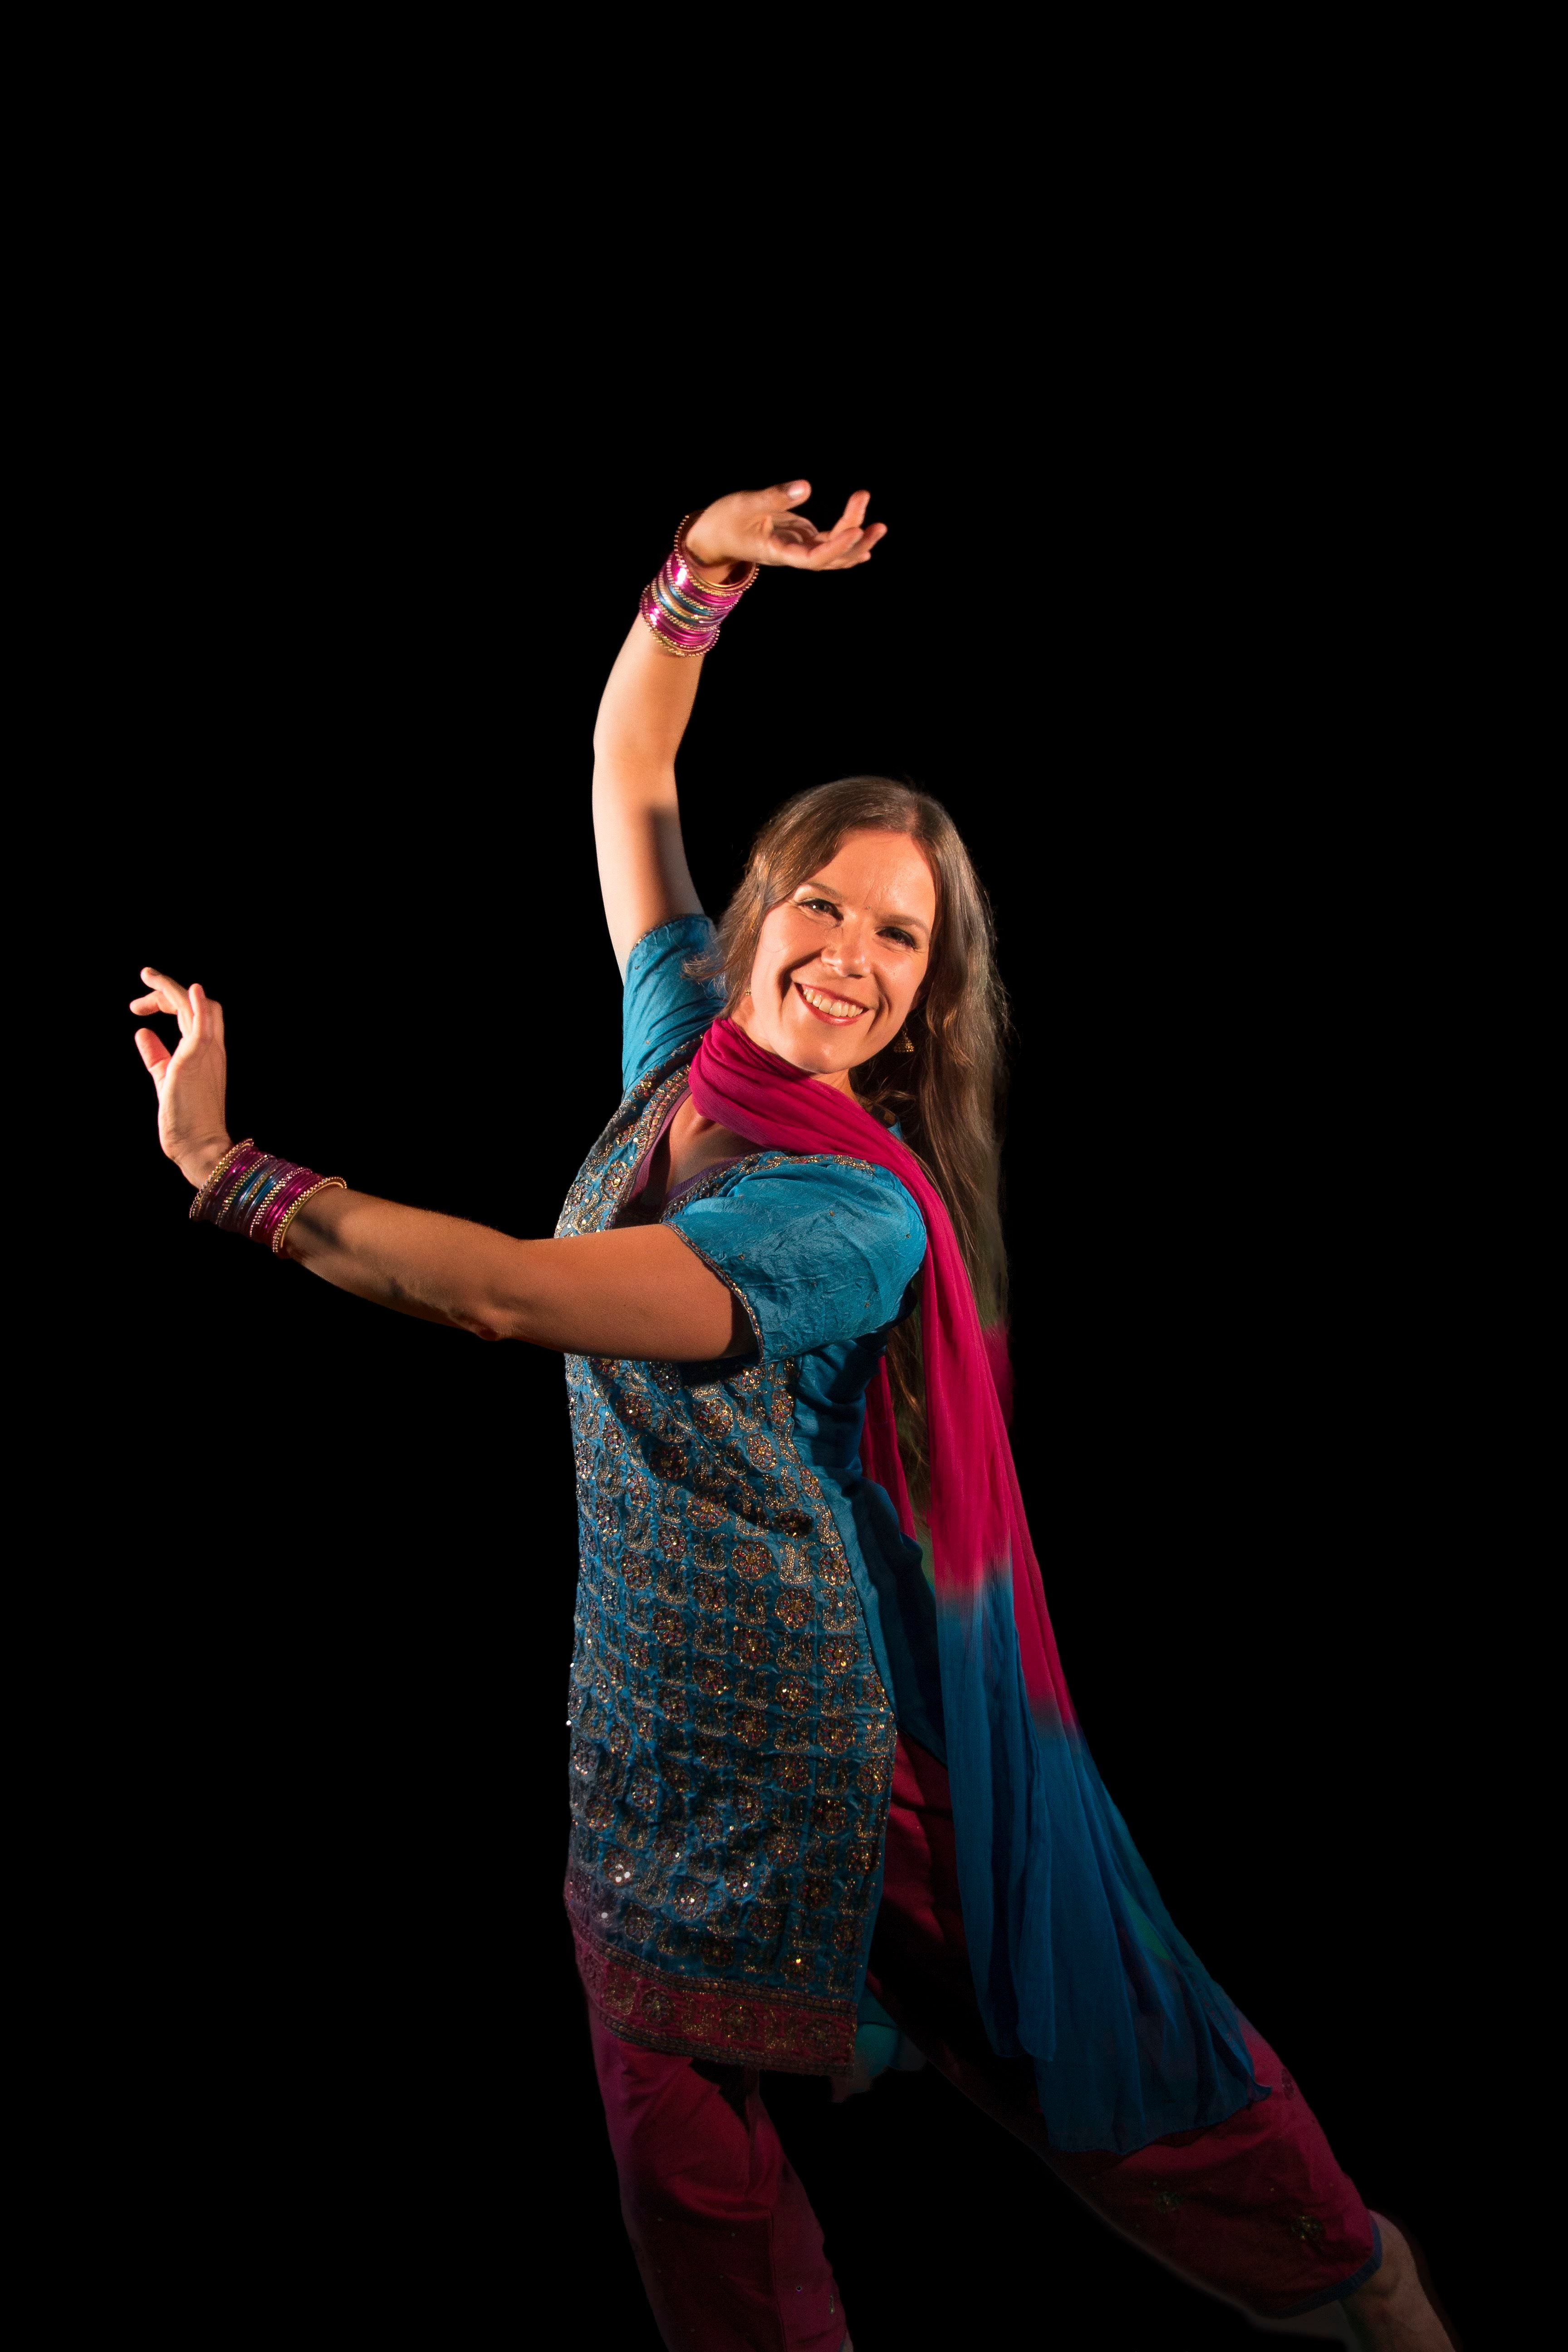 Children's dance and Bollywood dance